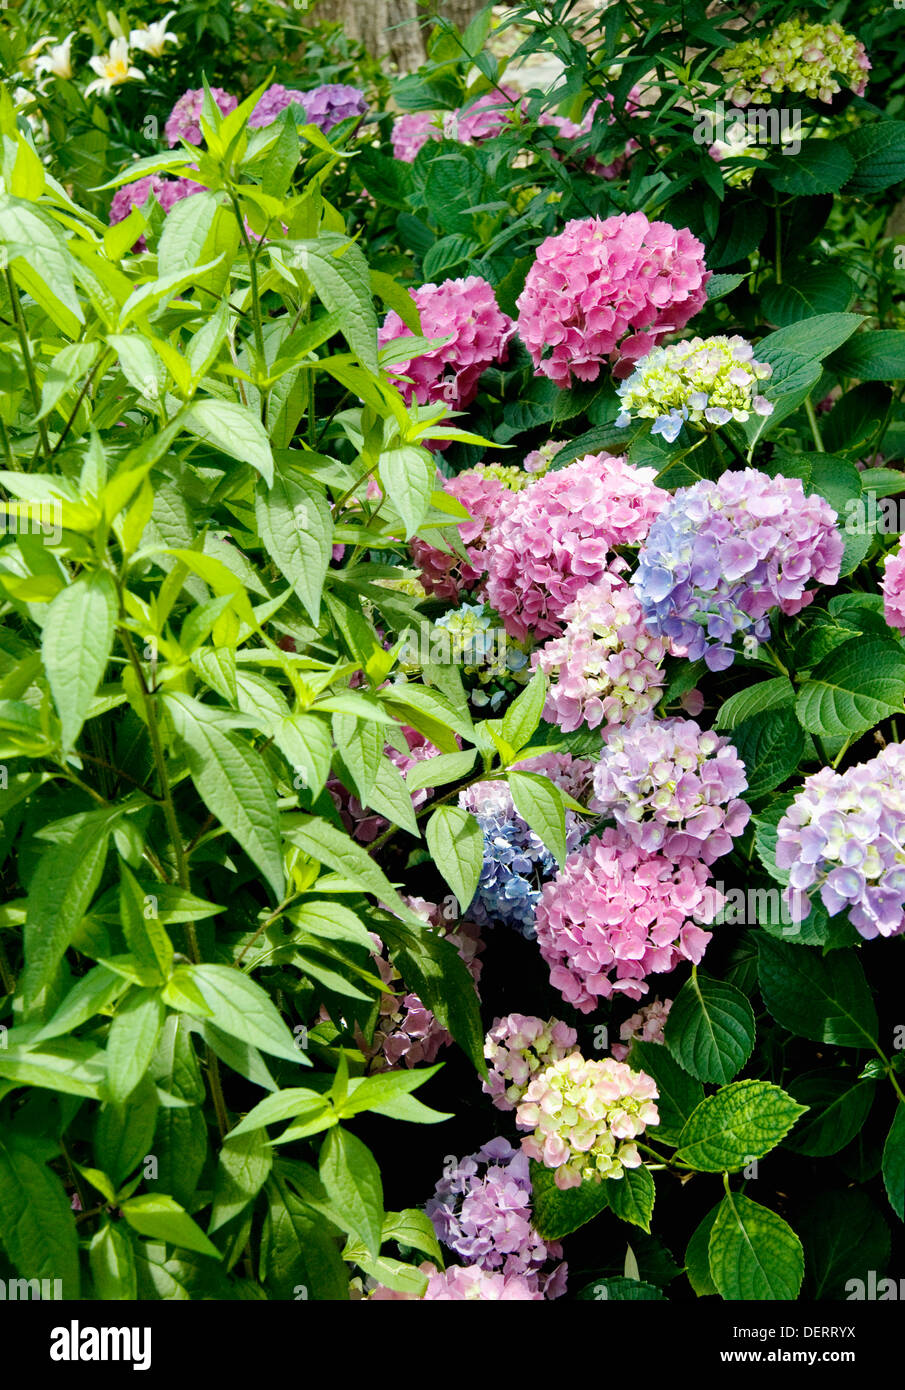 photo of hydrangeas in community garden in New York - Stock Image